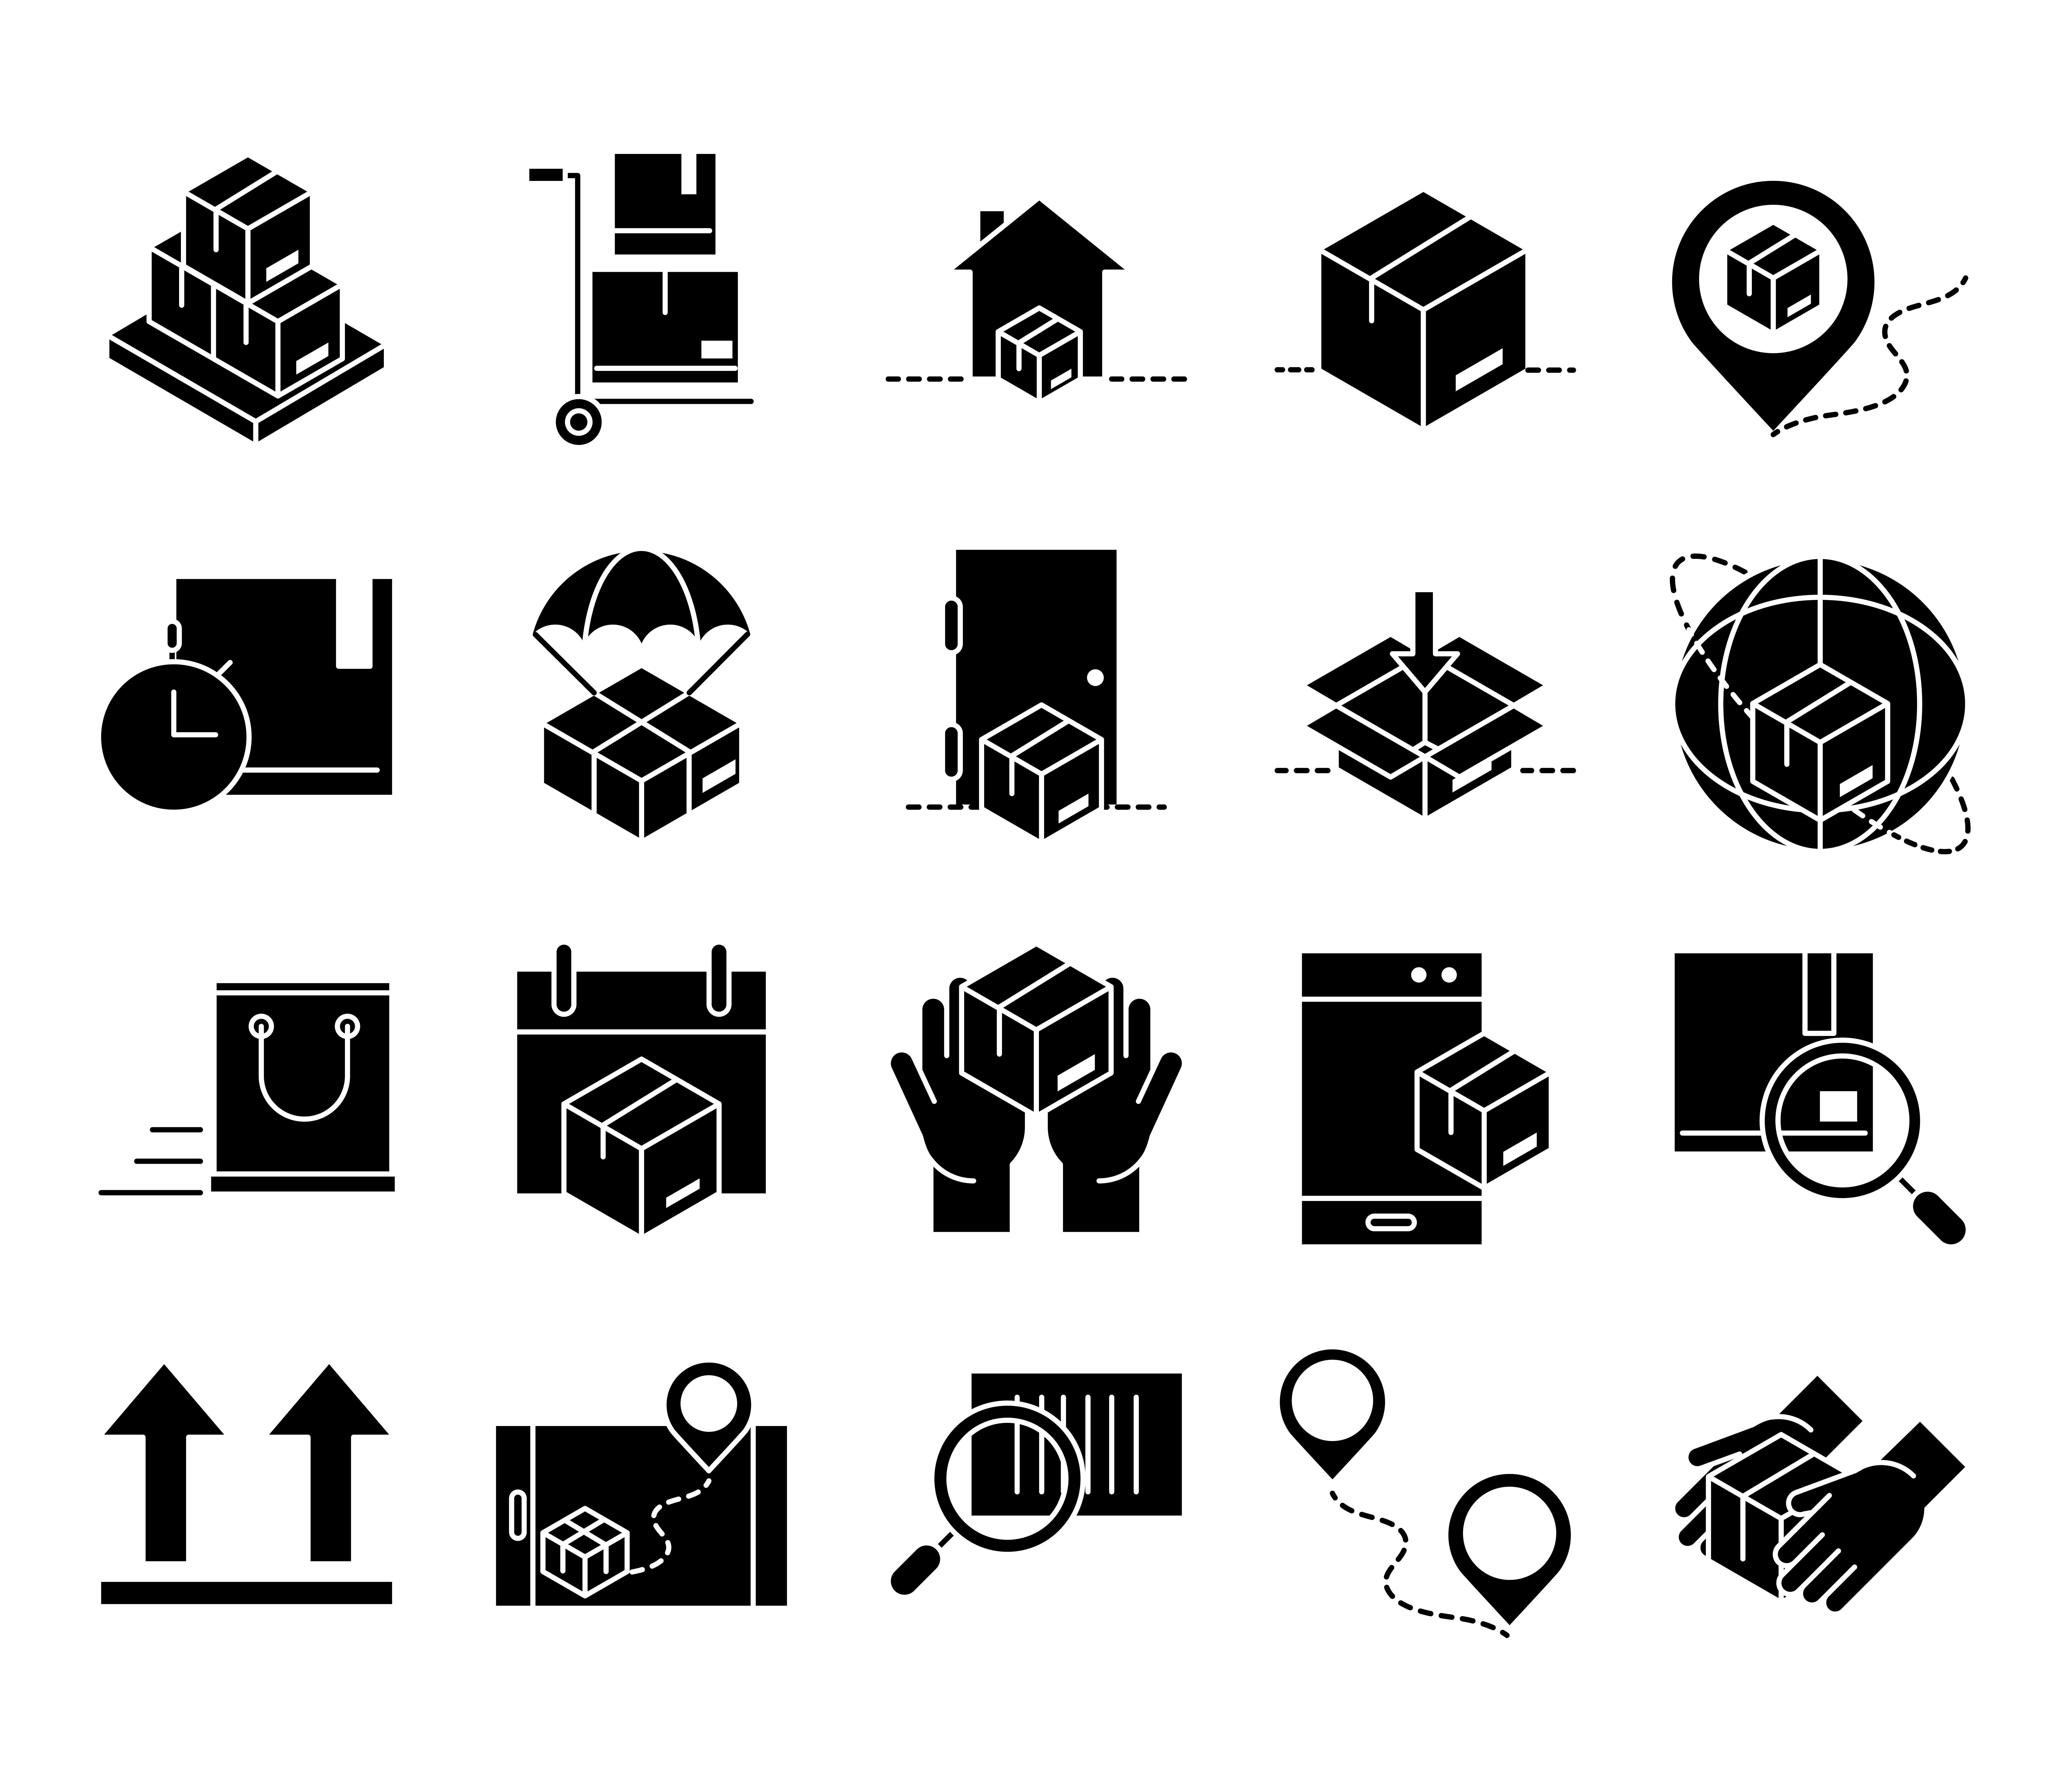 Delivery and logistics black icon pack